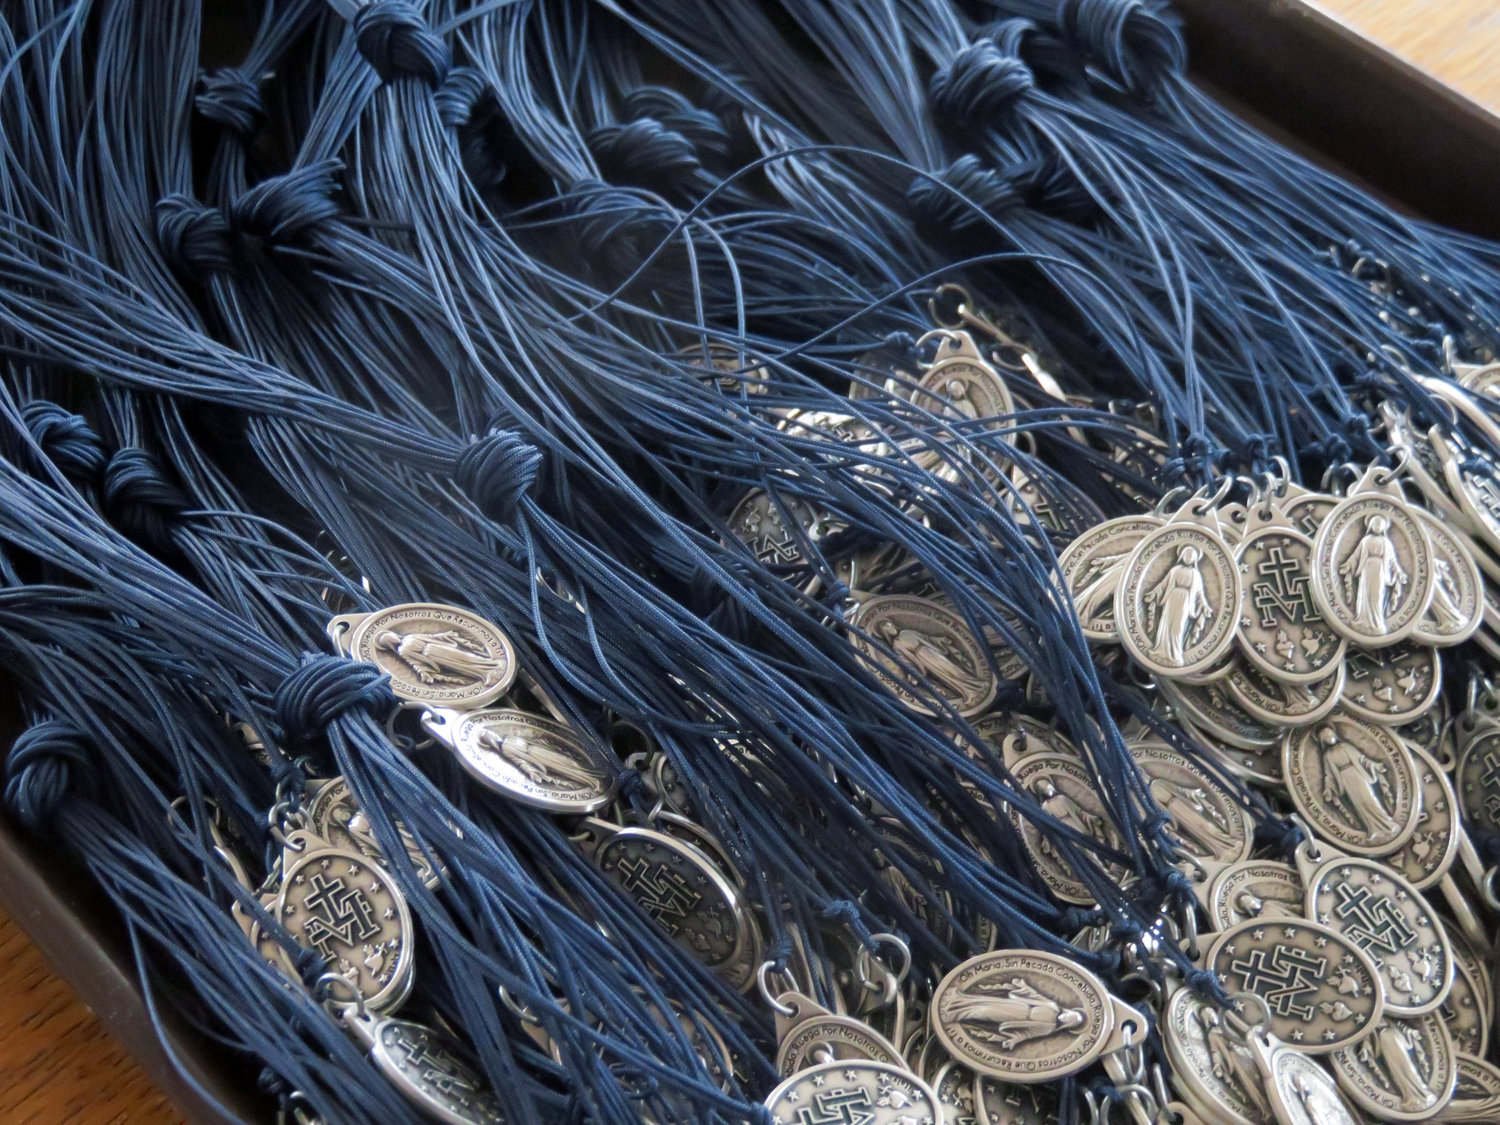 Hundreds of miraculous medals were among the gifts brought to Ethiopia.